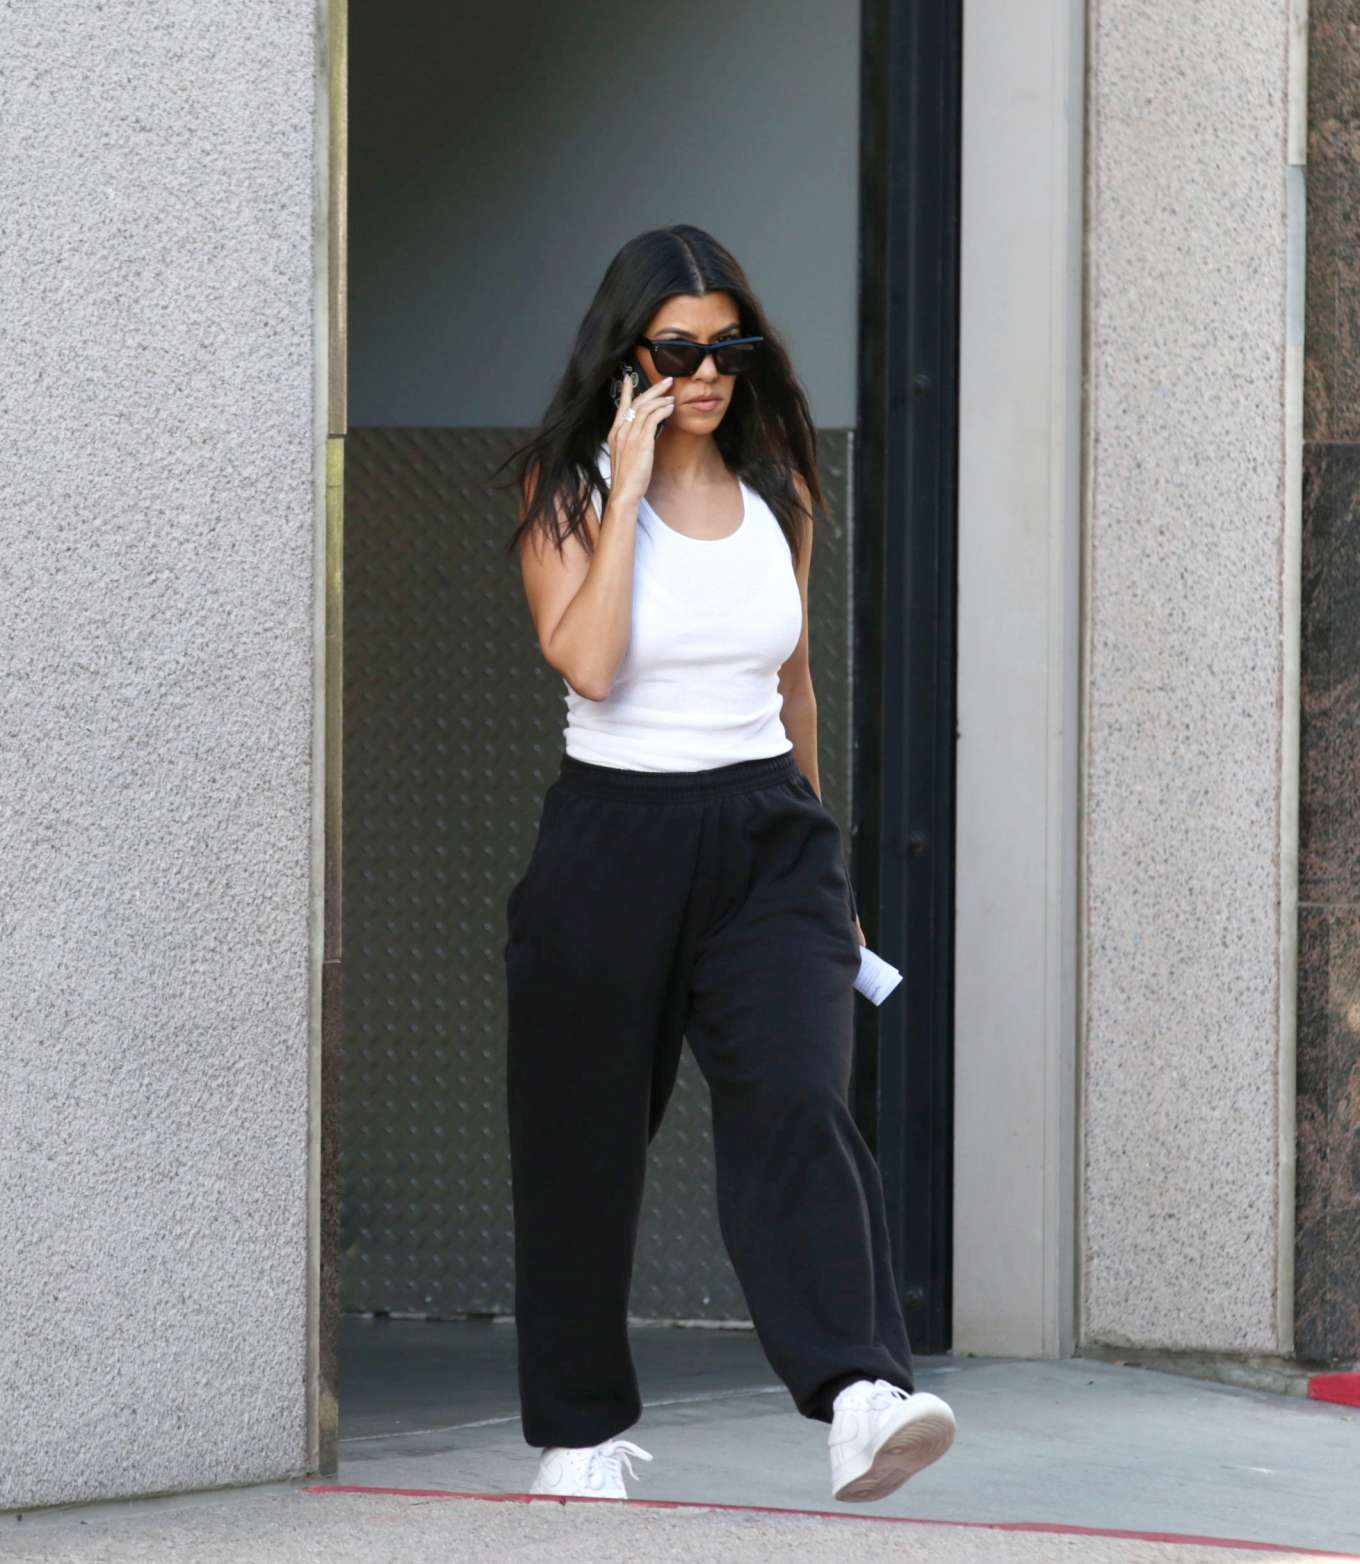 Kourtney Kardashian rocking black baggy sweatpants with side pockets